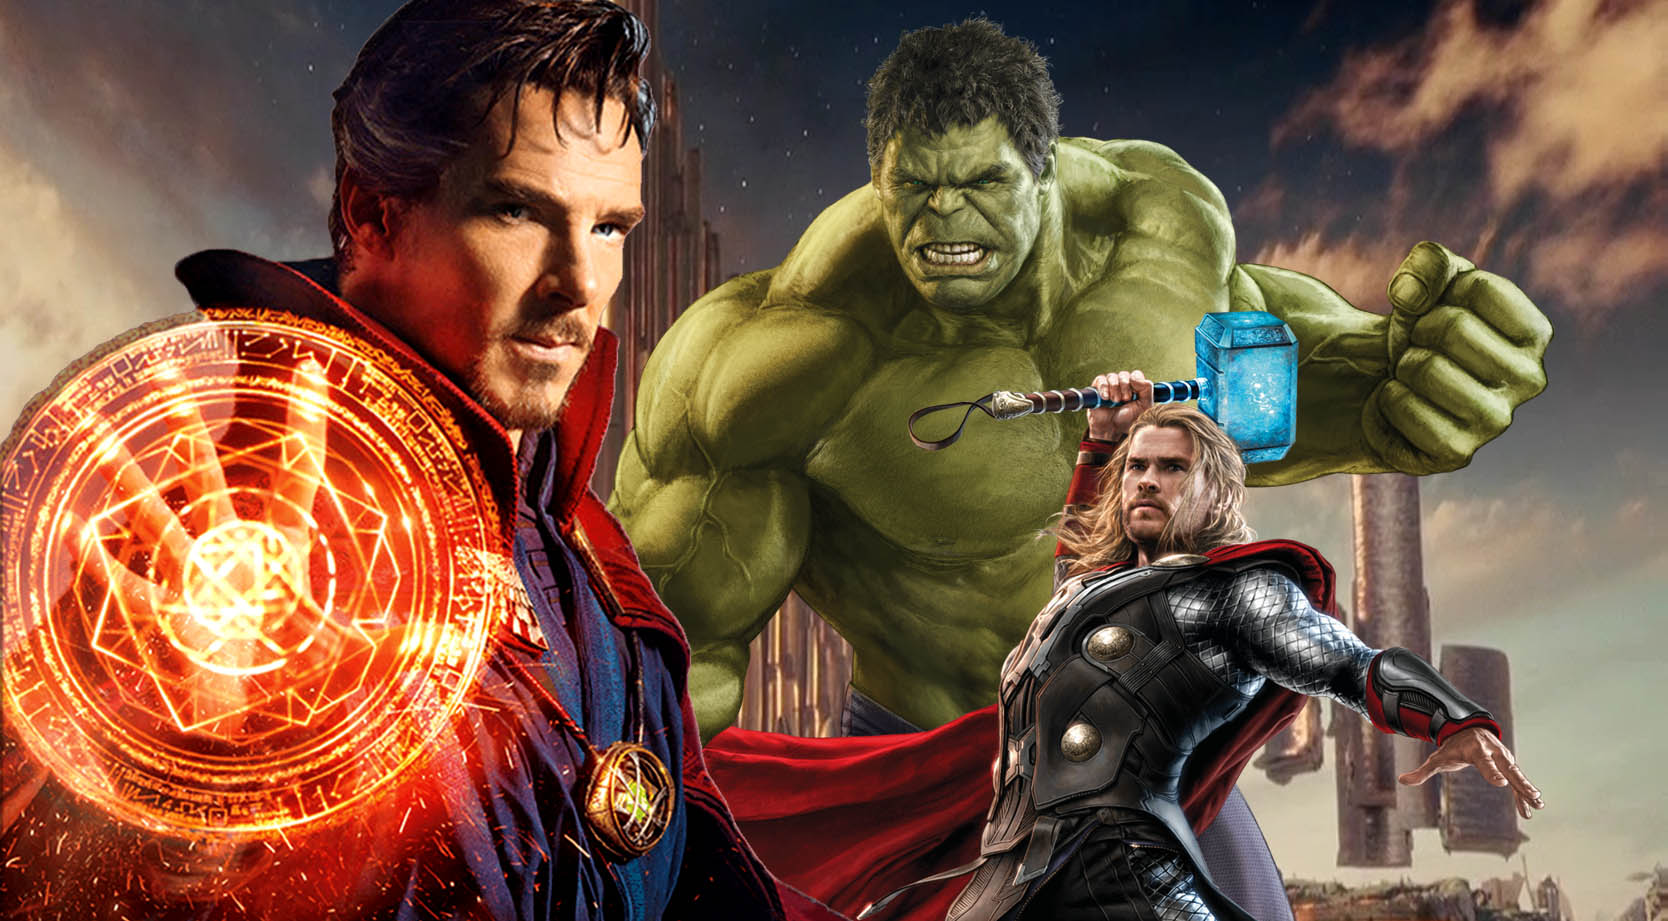 Doctor Strange is headed to Thor: Ragnarok.